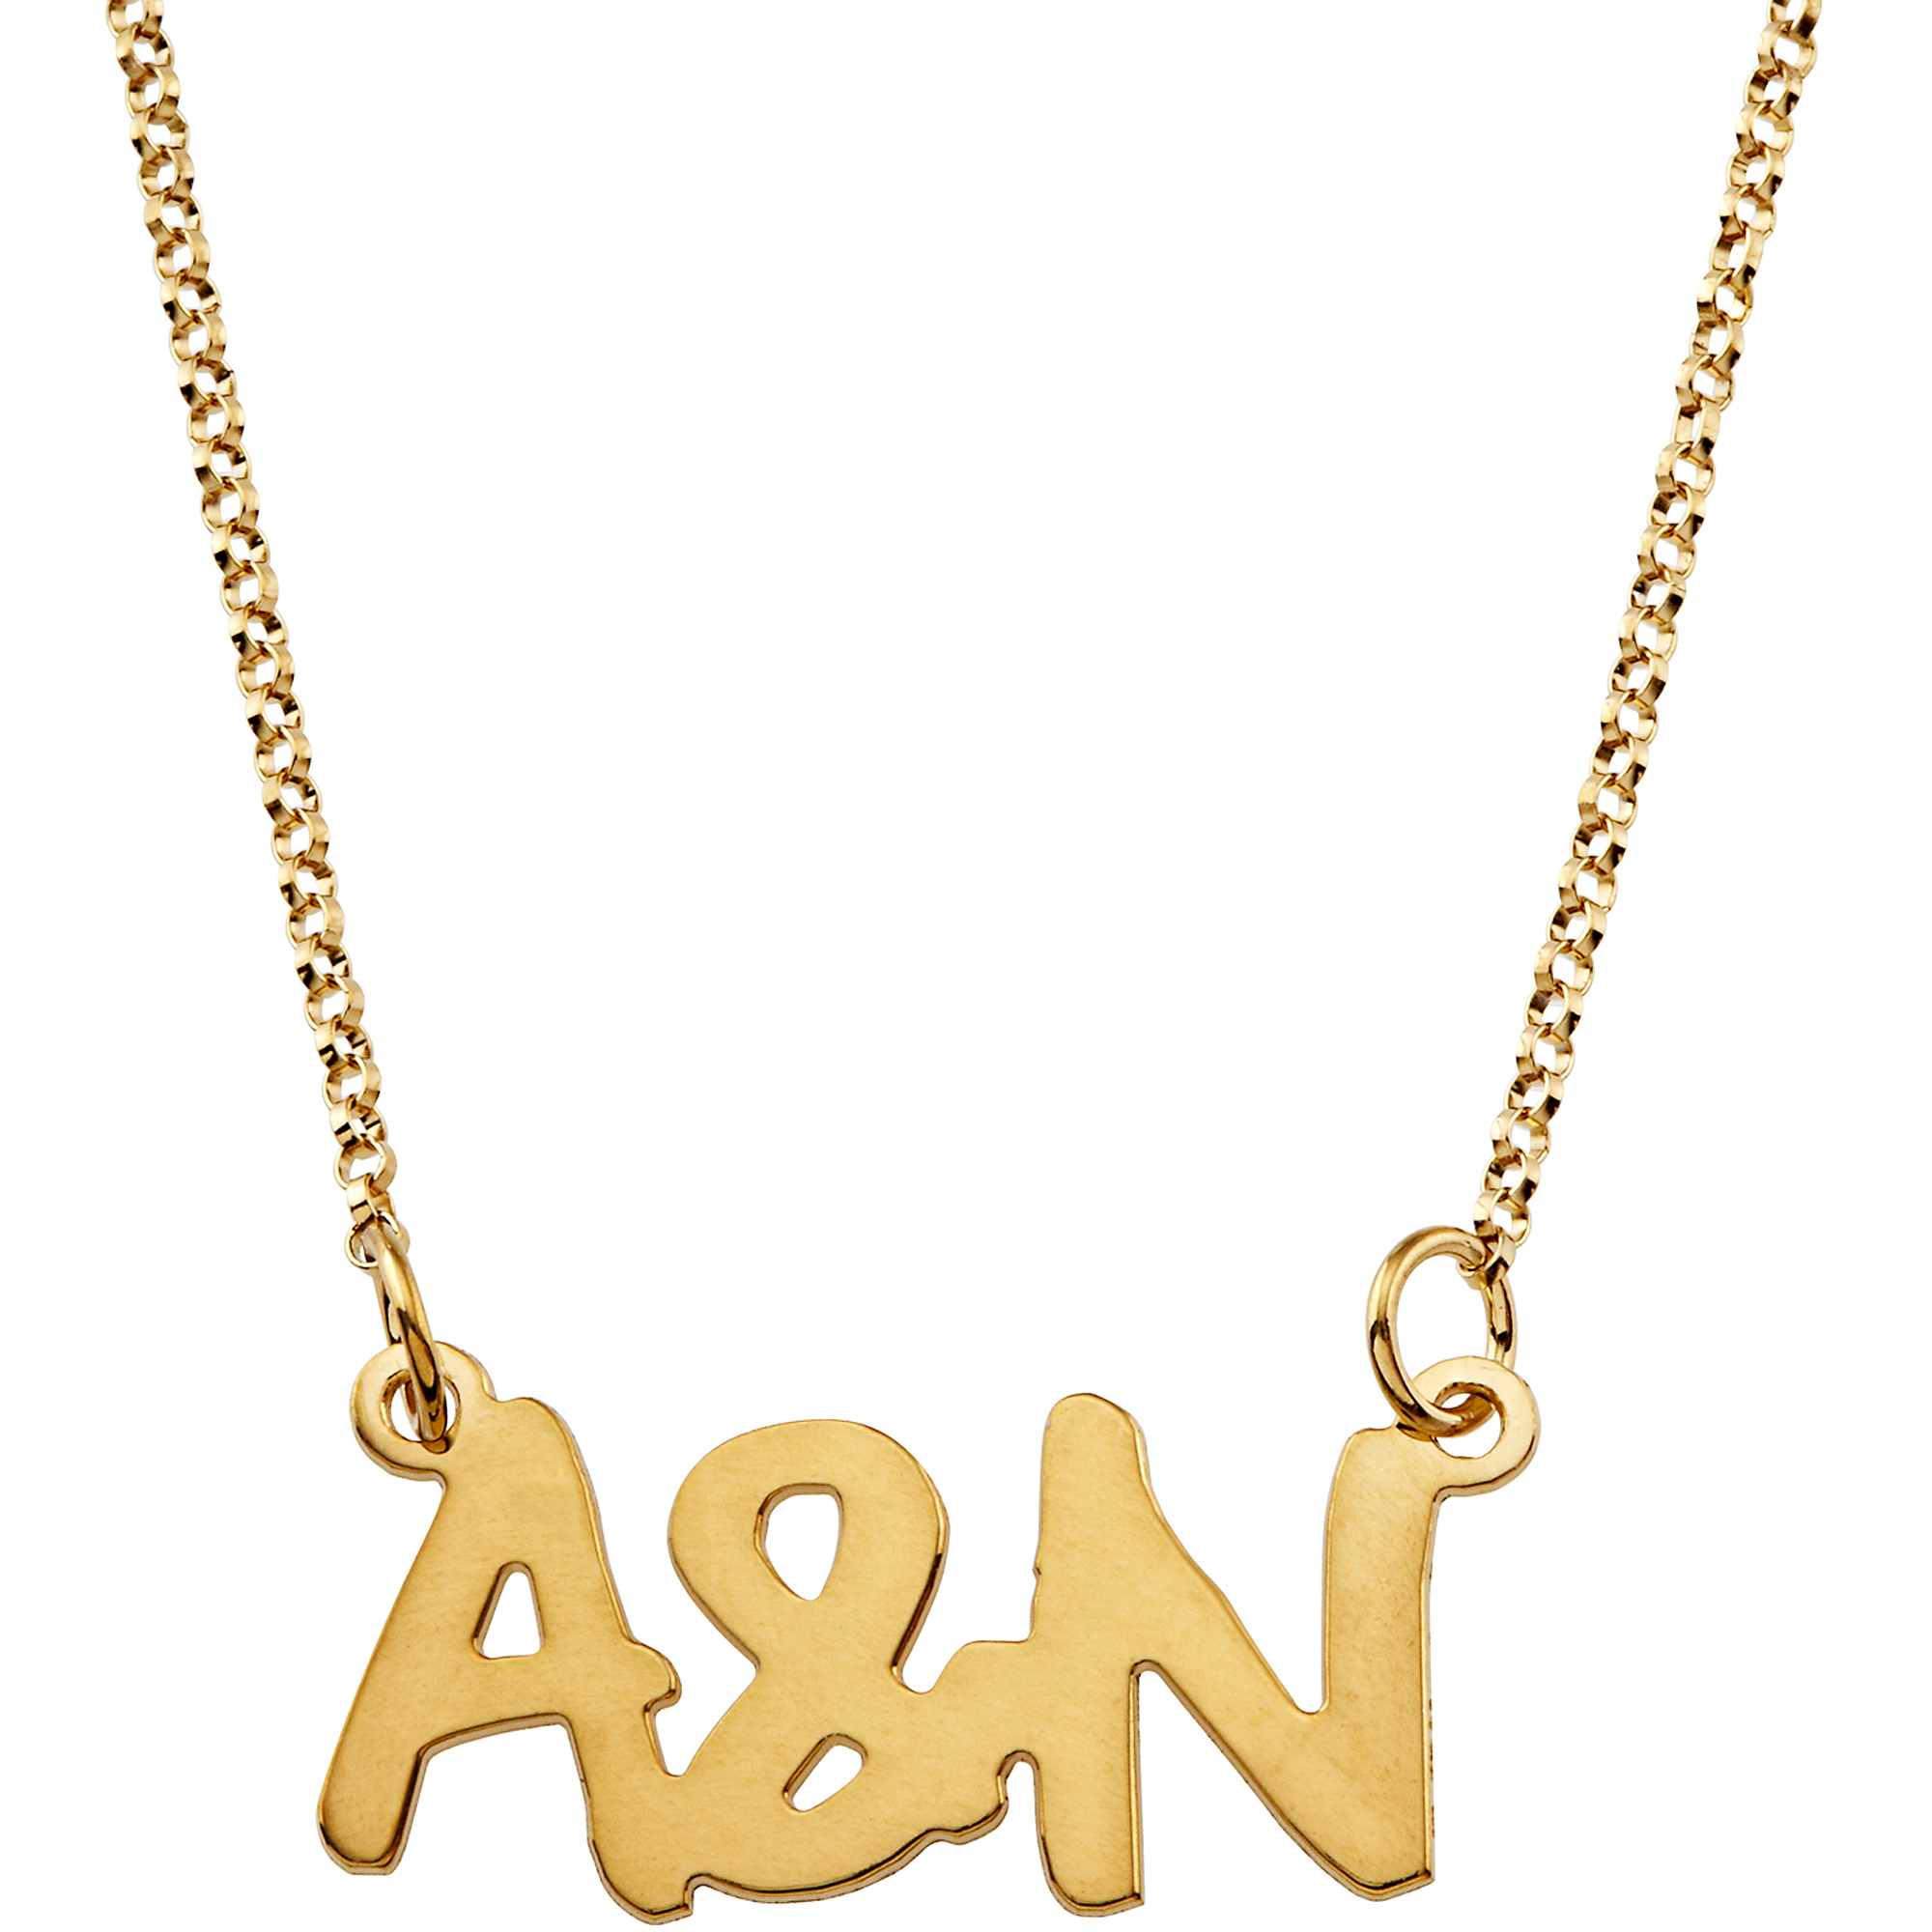 Personalized Women's Gold over Sterling Silver Couples Uppercase Initial Necklace, 18""